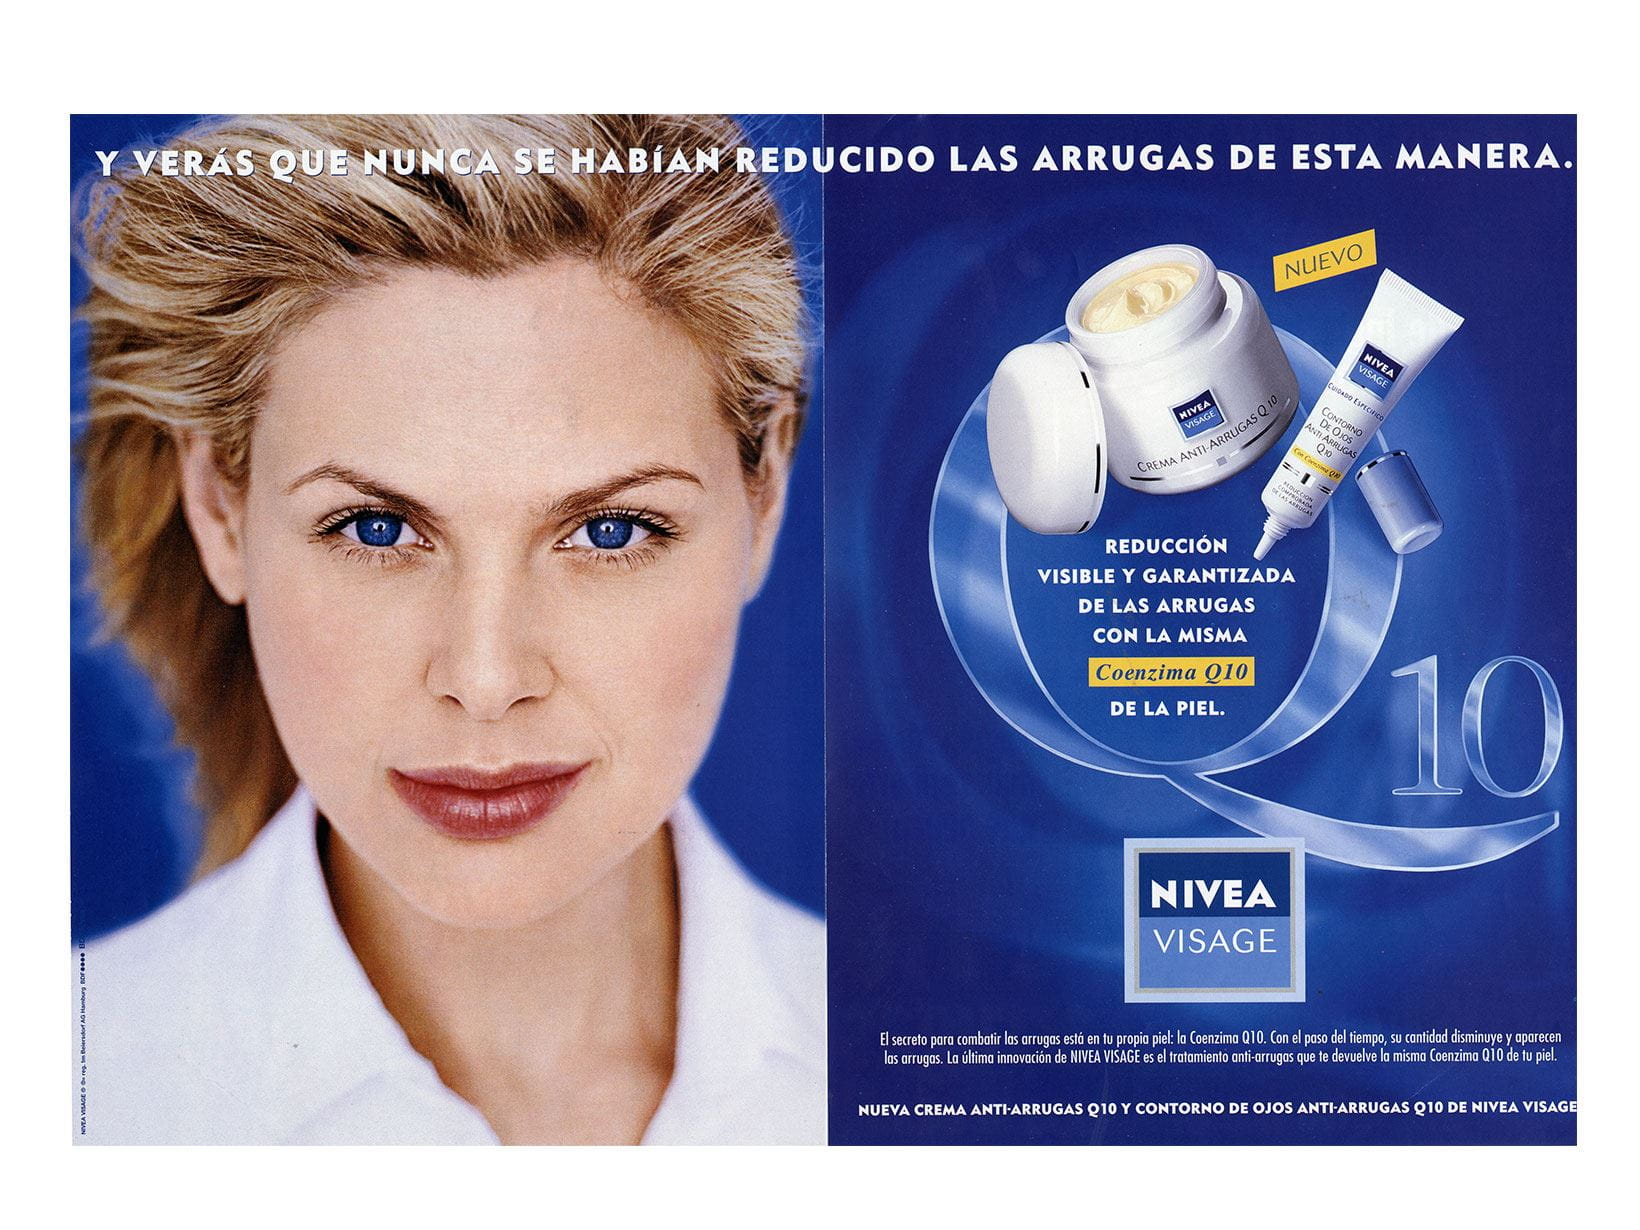 NIVEA Visage Q10 advertisement from 1998